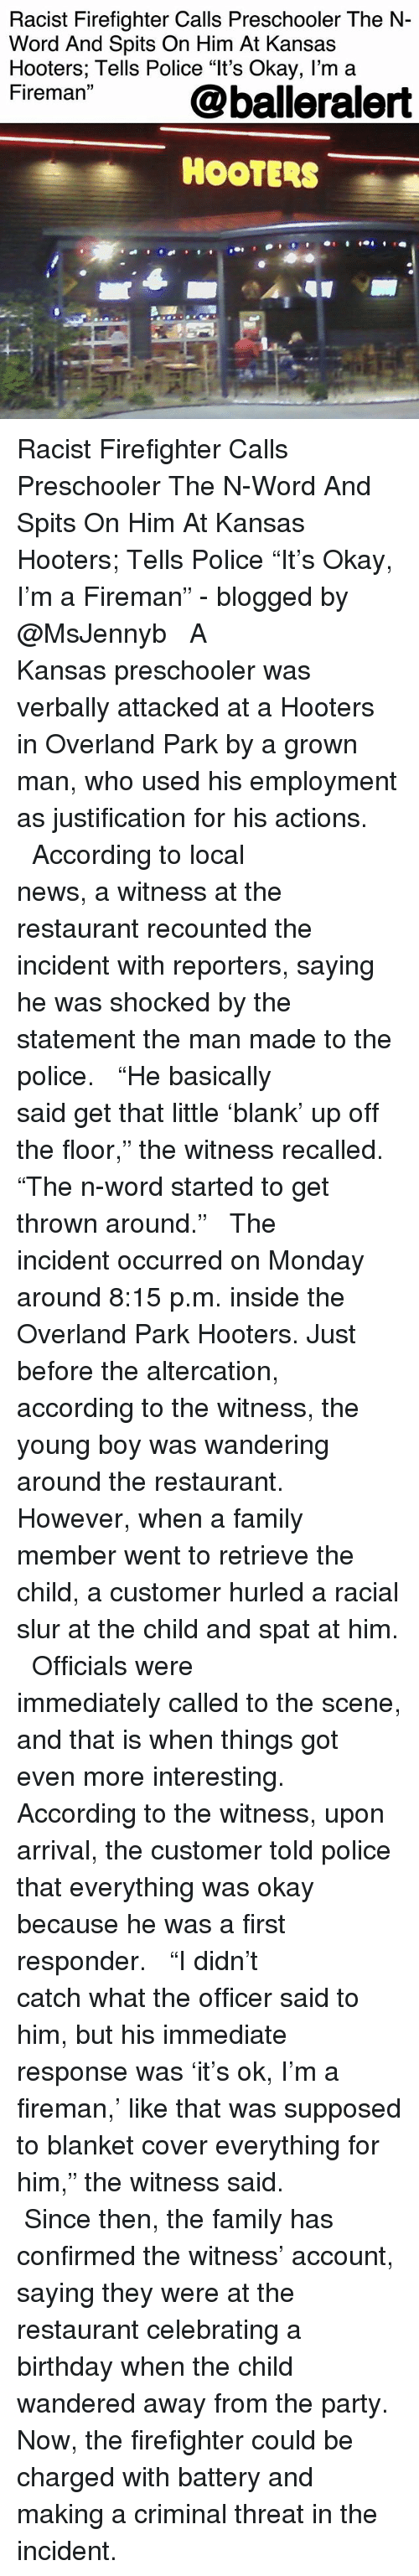 """Birthday, Family, and Hooters: Racist Firefighter Calls Preschooler The N-  Word And Spits On Him At Kansas  Hooters; Tells Police """"lt's Okay, l'm a  Fireman @balleralert  HOOTERS Racist Firefighter Calls Preschooler The N-Word And Spits On Him At Kansas Hooters; Tells Police """"It's Okay, I'm a Fireman"""" - blogged by @MsJennyb ⠀⠀⠀⠀⠀⠀⠀ ⠀⠀⠀⠀⠀⠀⠀ A Kansas preschooler was verbally attacked at a Hooters in Overland Park by a grown man, who used his employment as justification for his actions. ⠀⠀⠀⠀⠀⠀⠀ ⠀⠀⠀⠀⠀⠀⠀ According to local news, a witness at the restaurant recounted the incident with reporters, saying he was shocked by the statement the man made to the police. ⠀⠀⠀⠀⠀⠀⠀ ⠀⠀⠀⠀⠀⠀⠀ """"He basically said get that little 'blank' up off the floor,"""" the witness recalled. """"The n-word started to get thrown around."""" ⠀⠀⠀⠀⠀⠀⠀ ⠀⠀⠀⠀⠀⠀⠀ The incident occurred on Monday around 8:15 p.m. inside the Overland Park Hooters. Just before the altercation, according to the witness, the young boy was wandering around the restaurant. However, when a family member went to retrieve the child, a customer hurled a racial slur at the child and spat at him. ⠀⠀⠀⠀⠀⠀⠀ ⠀⠀⠀⠀⠀⠀⠀ Officials were immediately called to the scene, and that is when things got even more interesting. According to the witness, upon arrival, the customer told police that everything was okay because he was a first responder. ⠀⠀⠀⠀⠀⠀⠀ ⠀⠀⠀⠀⠀⠀⠀ """"I didn't catch what the officer said to him, but his immediate response was 'it's ok, I'm a fireman,' like that was supposed to blanket cover everything for him,"""" the witness said. ⠀⠀⠀⠀⠀⠀⠀ ⠀⠀⠀⠀⠀⠀⠀ Since then, the family has confirmed the witness' account, saying they were at the restaurant celebrating a birthday when the child wandered away from the party. Now, the firefighter could be charged with battery and making a criminal threat in the incident."""